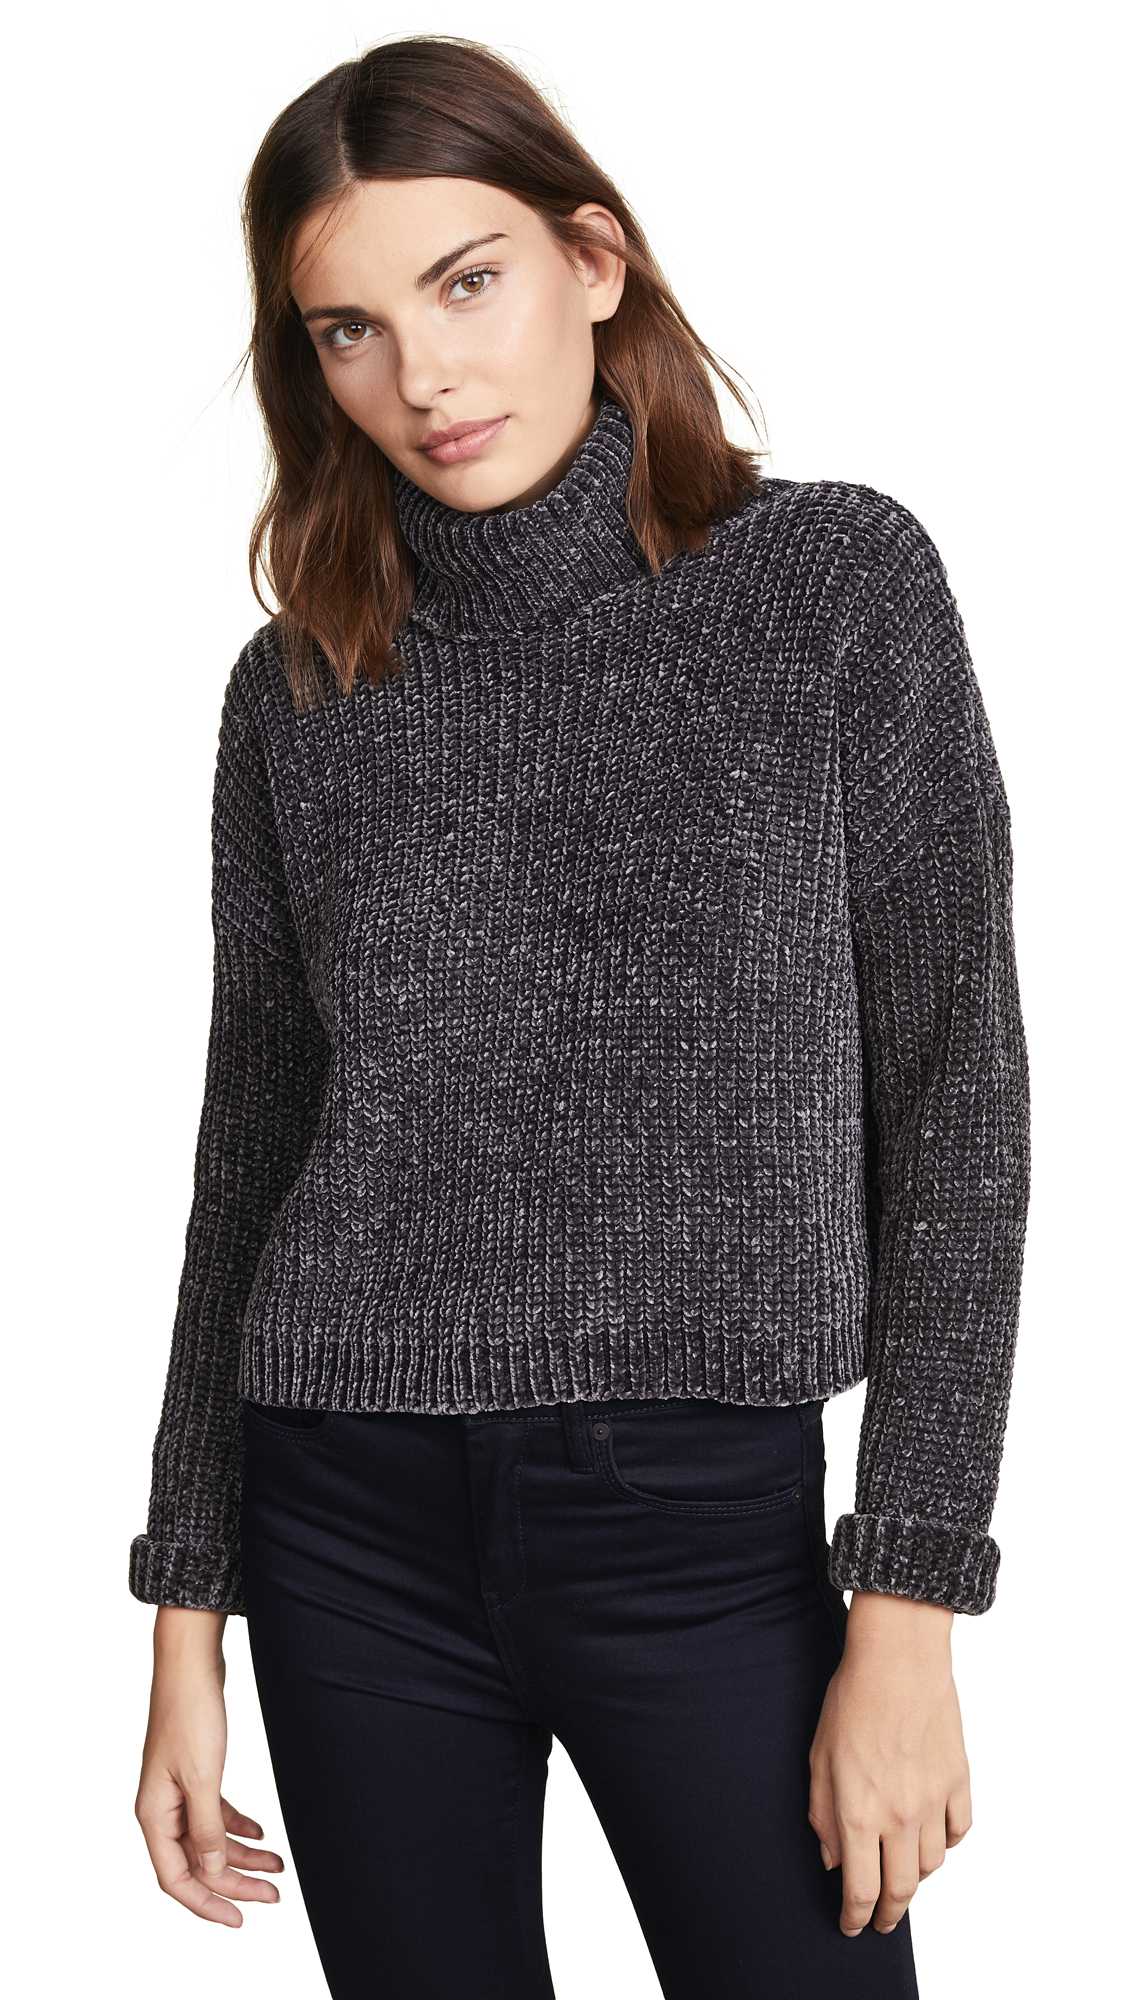 BLANK DENIM Chenille Sweater in Mica